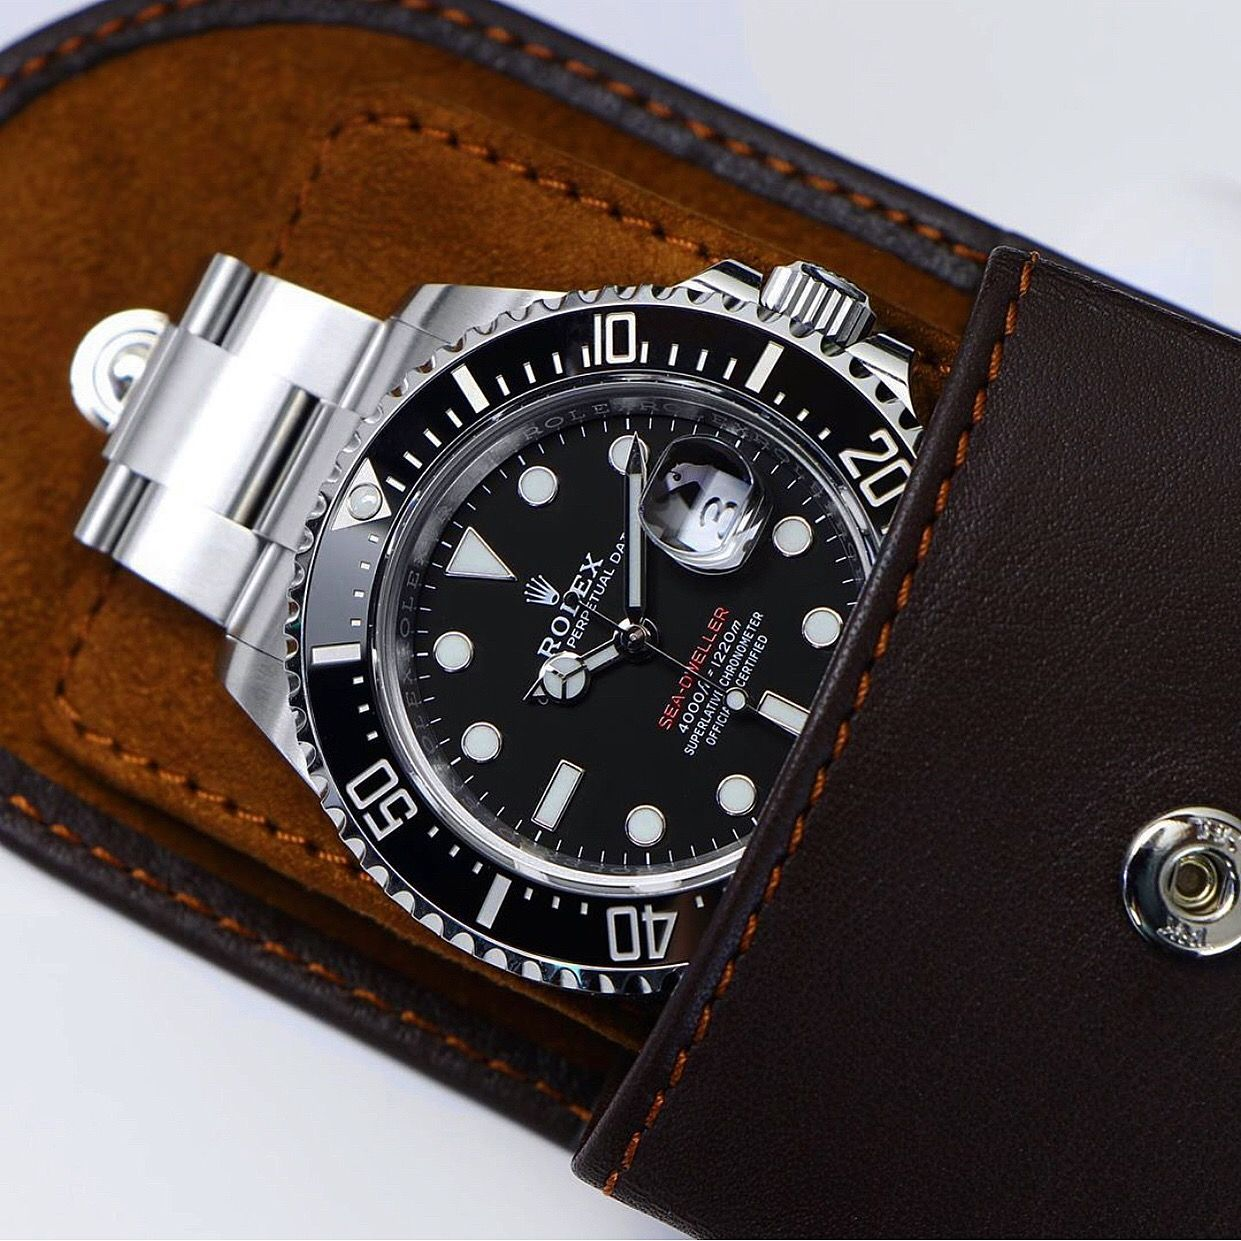 The Sea Dweller 43 Is Truly A Beautiful Watch We Are Super Excited To Be Making A Rubber Strap For It Whic Rolex Watches Rolex Sea Dweller Beautiful Watches